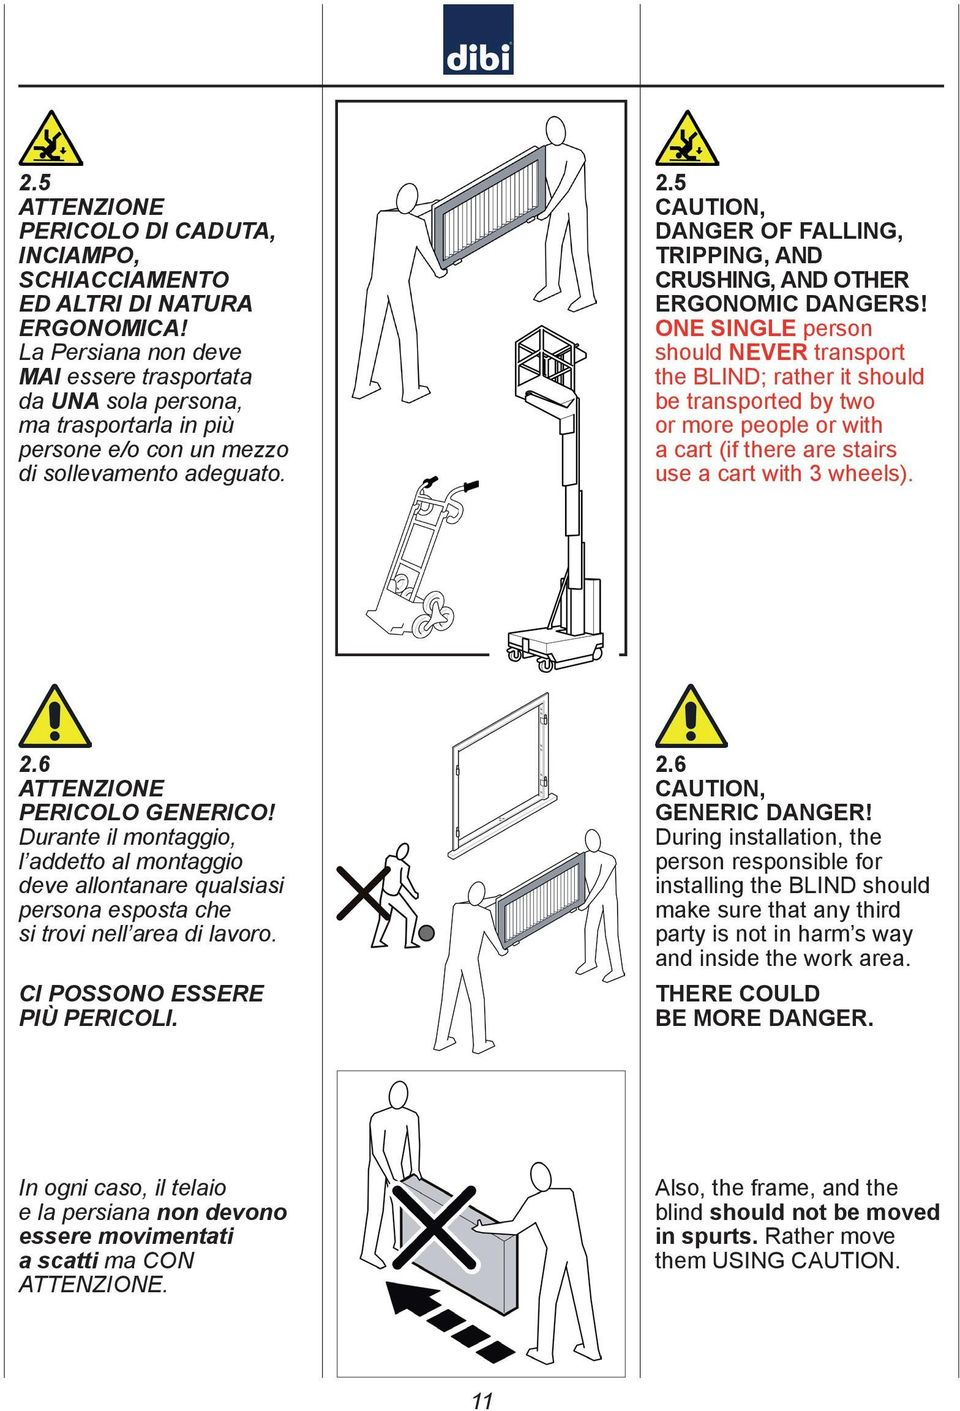 5 CAUTION, DANGER OF FALLING, TRIPPING, AND CRUSHING, AND OTHER ERGONOMIC DANGERS!